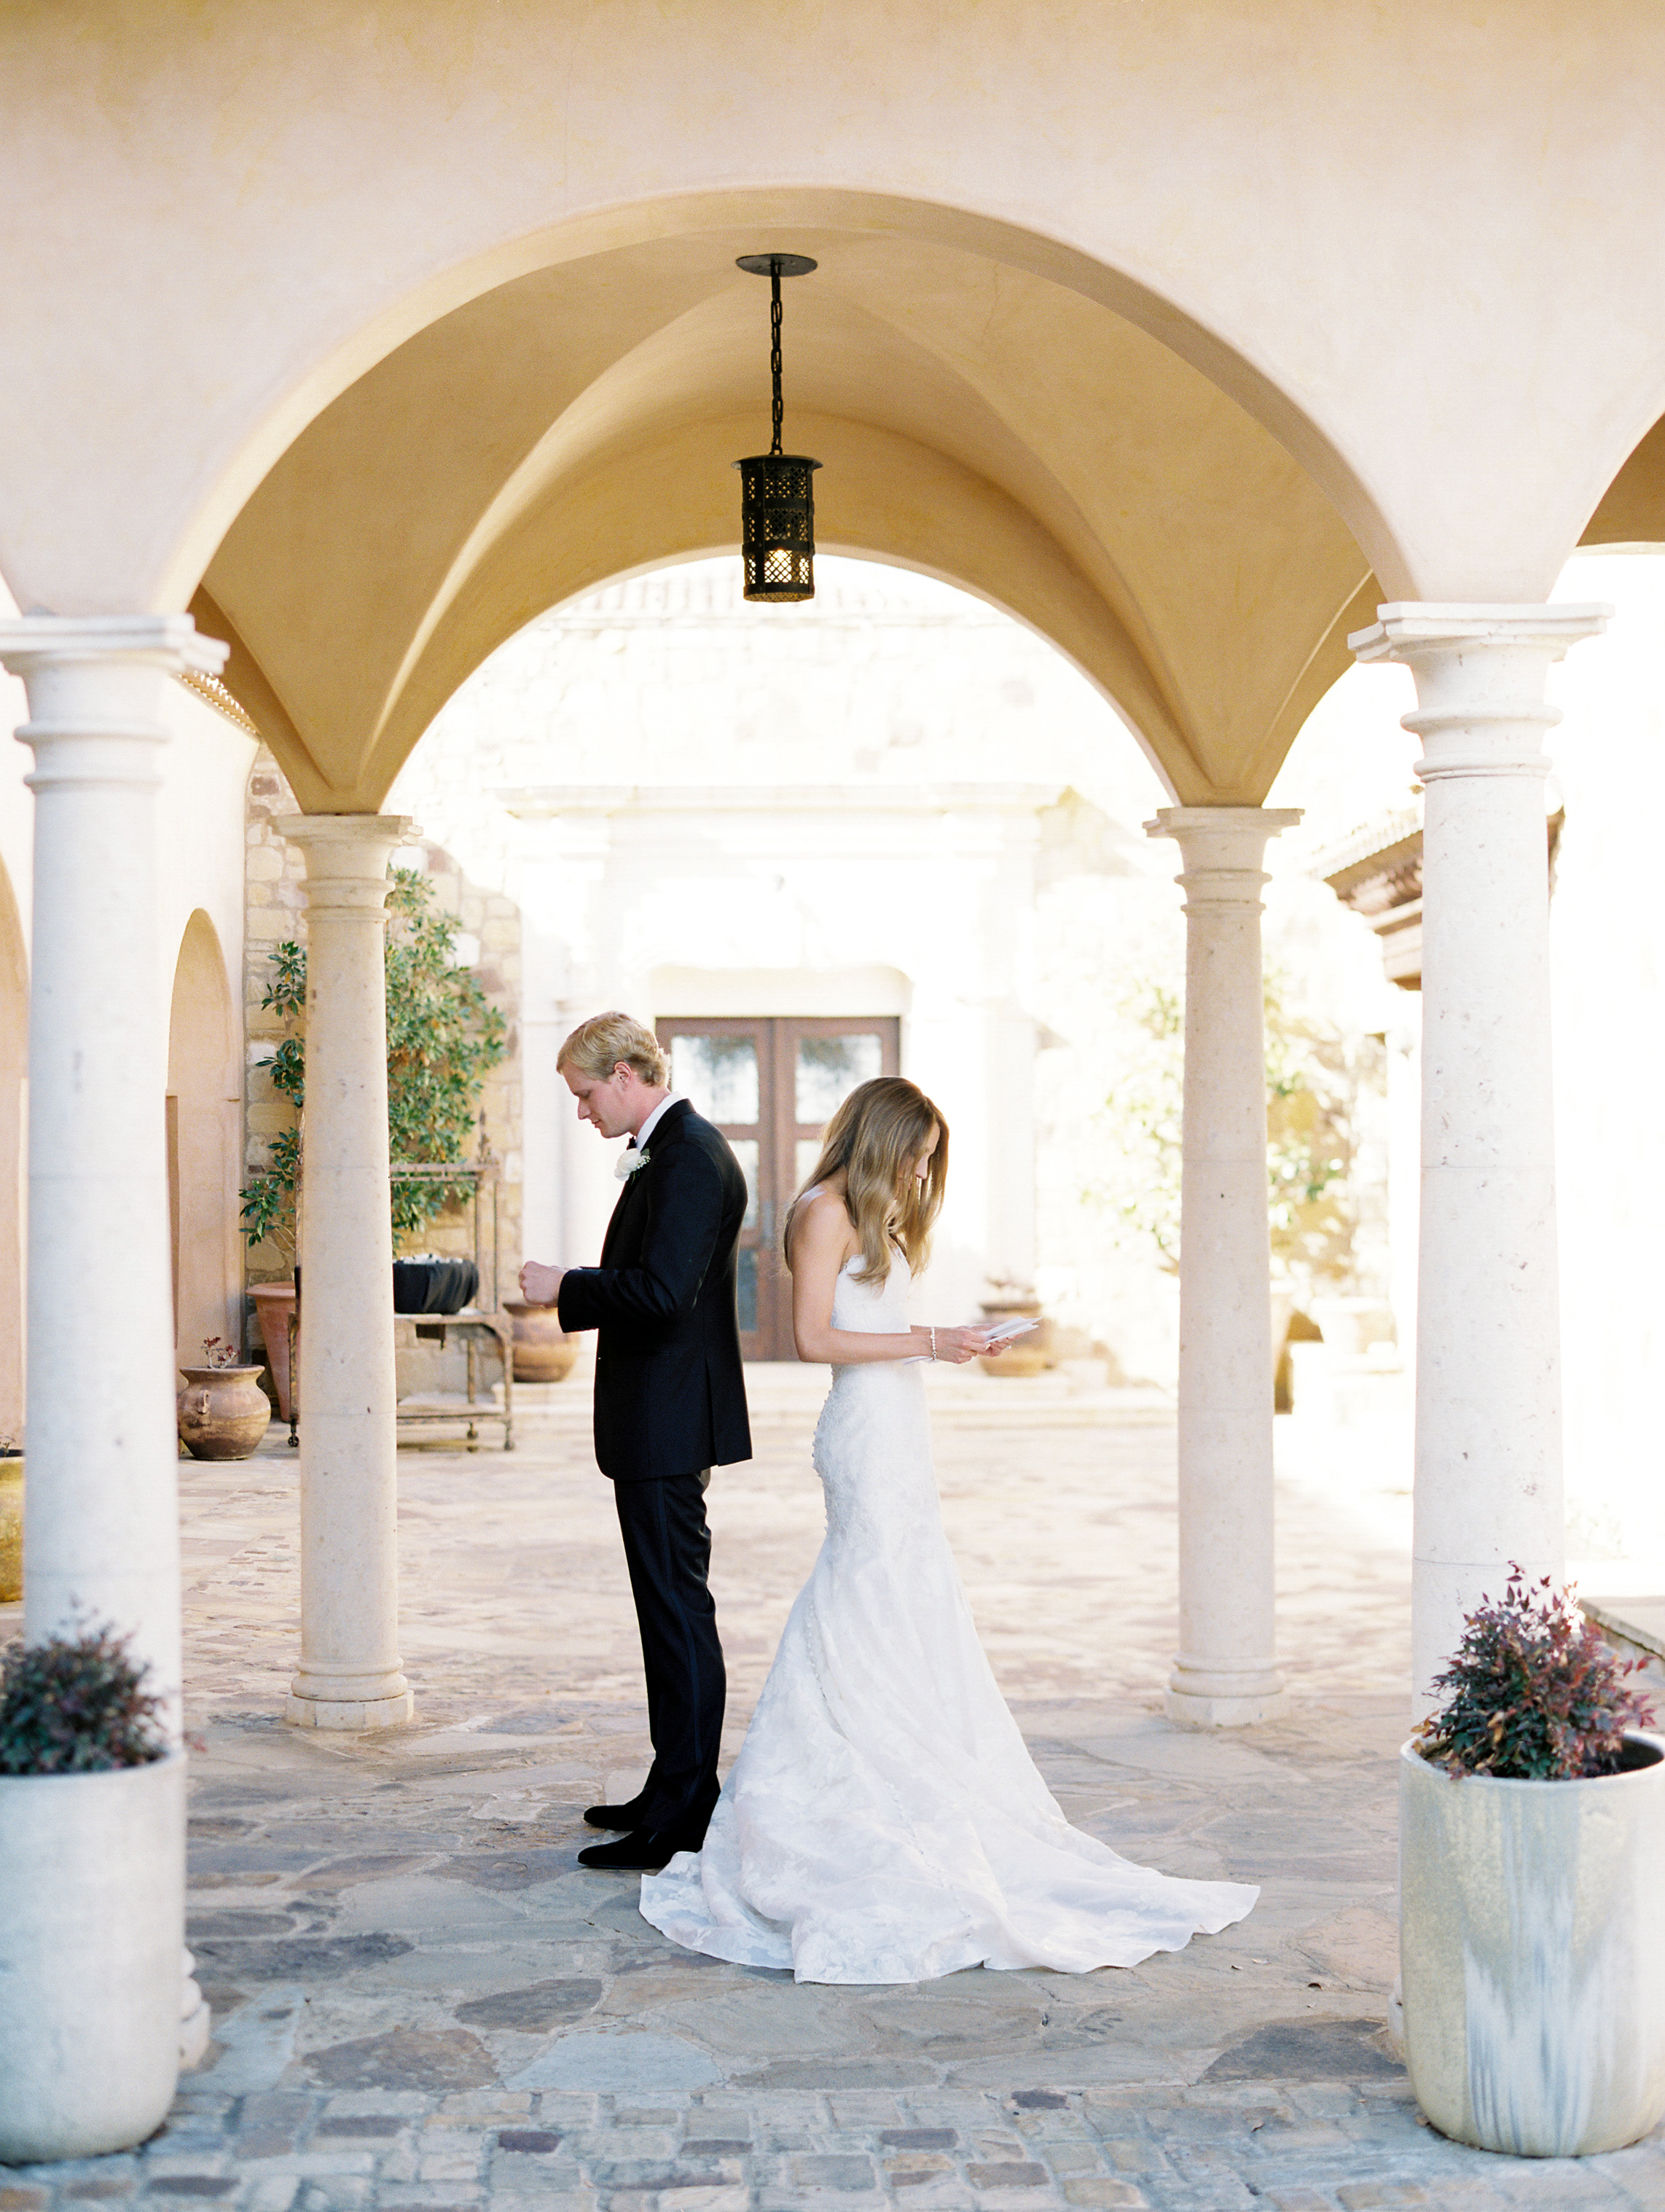 Escondido-Golf_Lake-Club-Hill-Country-Houston-Wedding-Photographer-Best-Top-Luxury-Destination-Engagements-Portrait-Austin-Photography-10.jpg